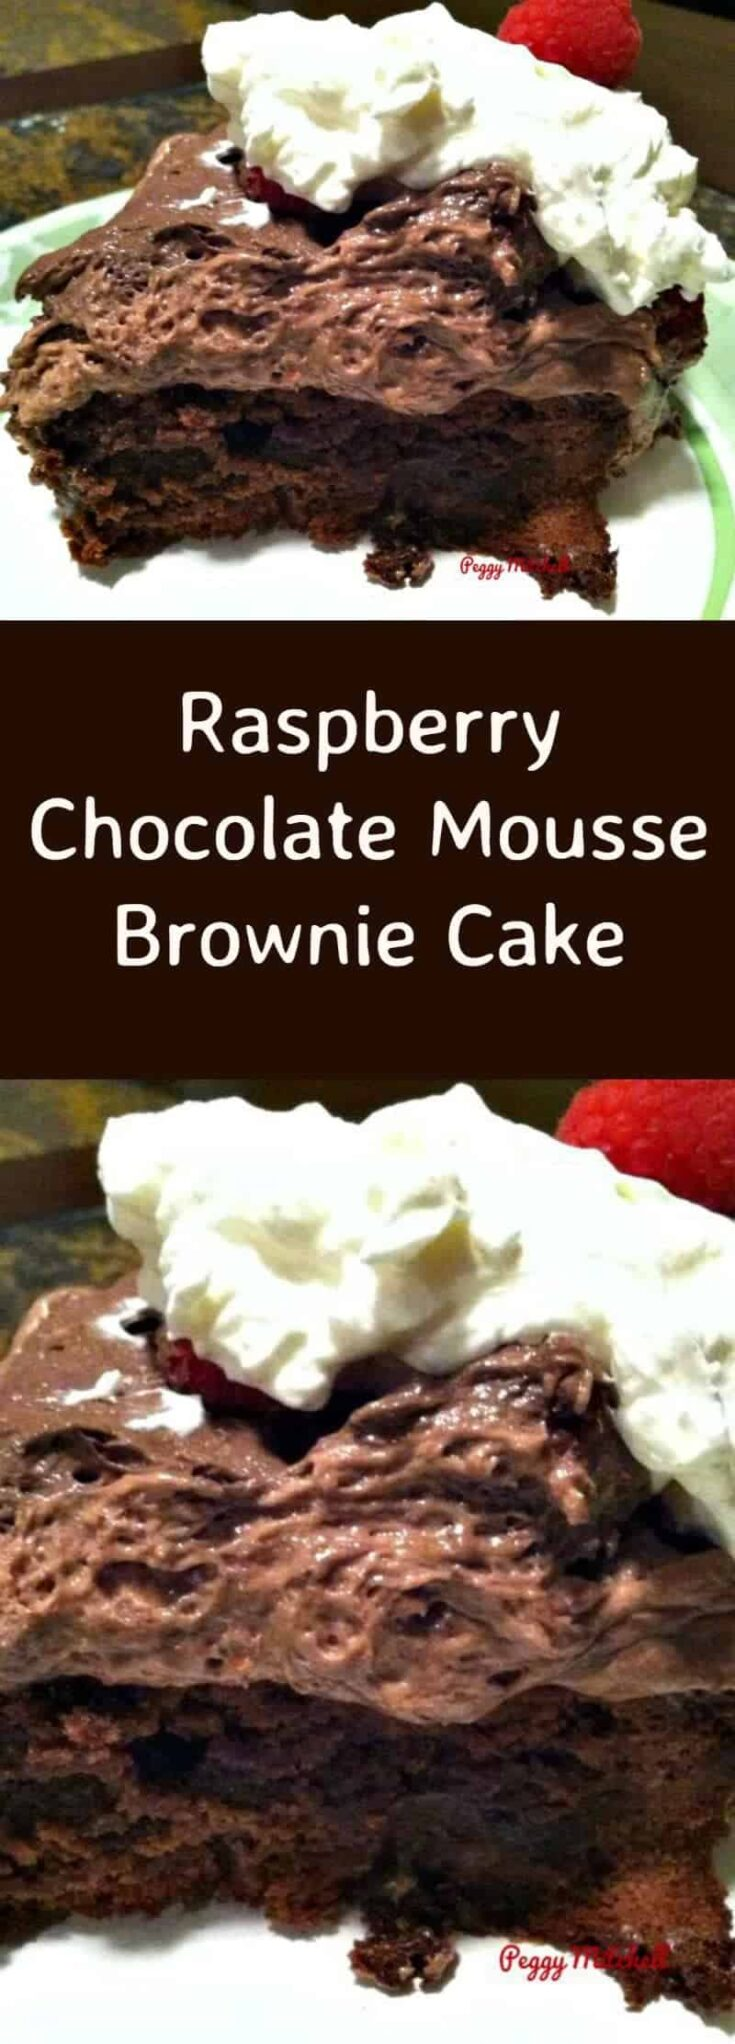 Raspberry Chocolate Mousse Brownie CakePTL